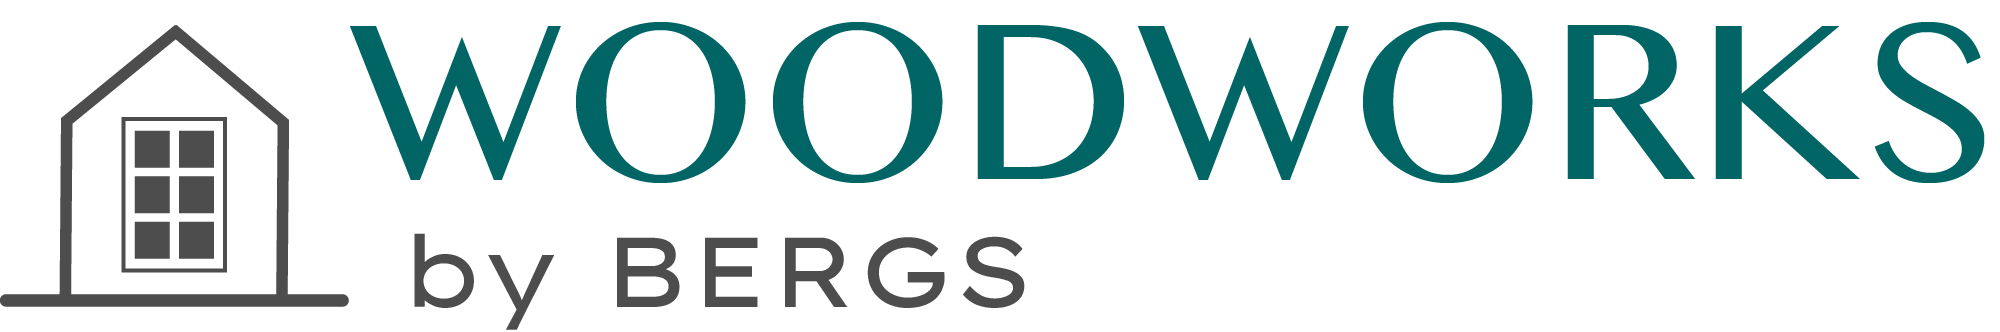 Woodworks by Bergs logo